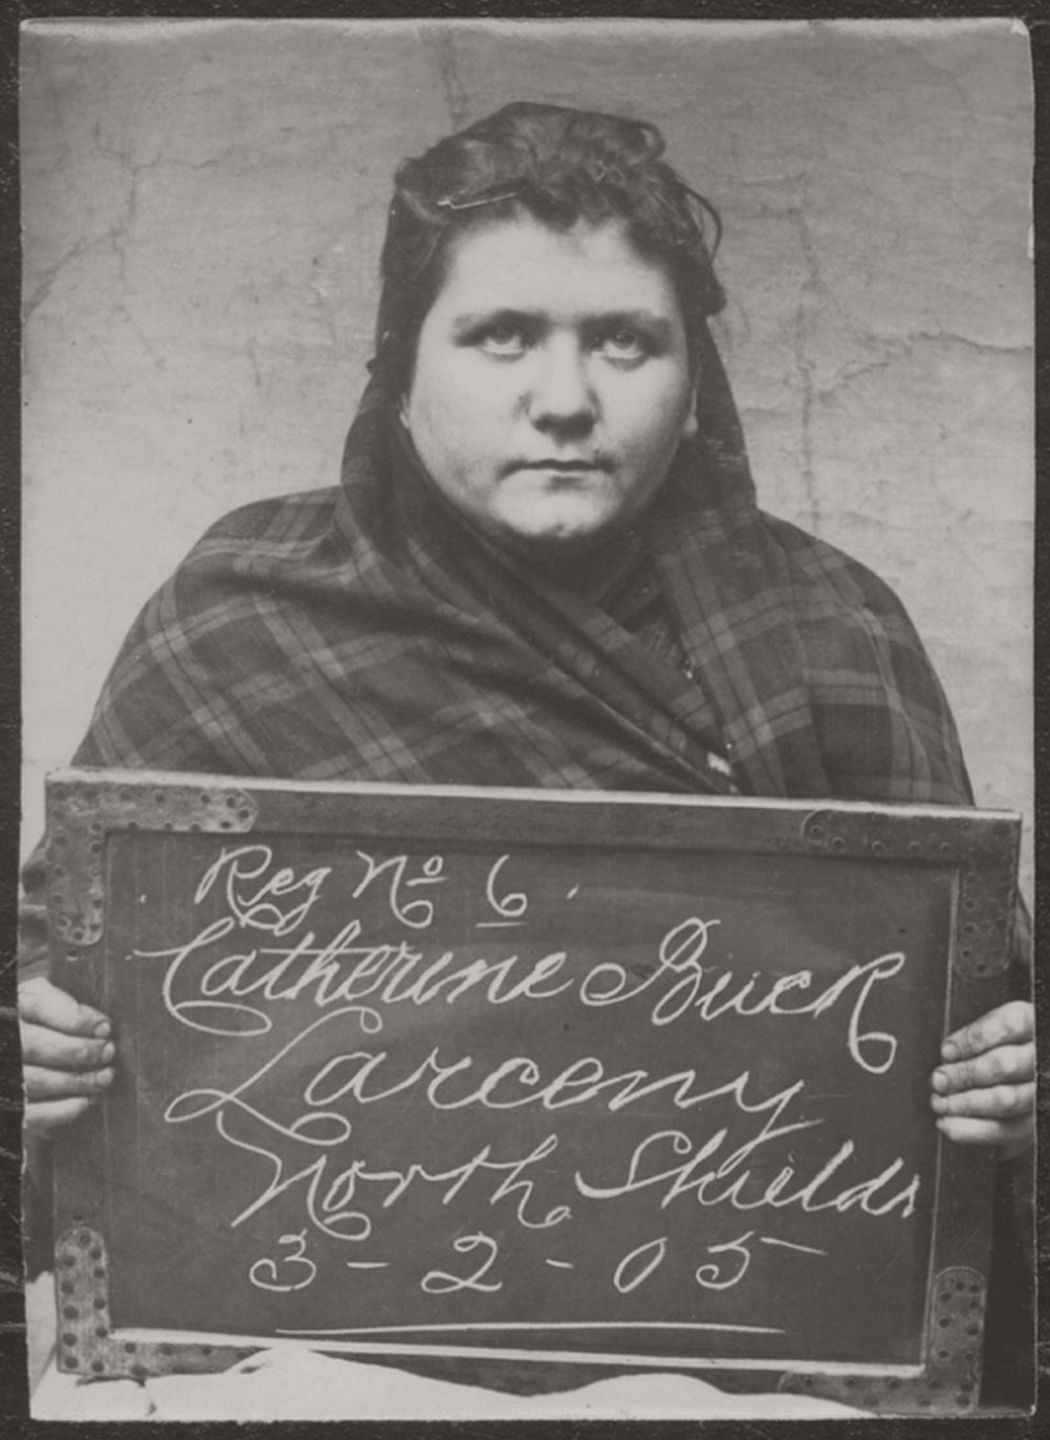 vintage-mug-shot-of-women-criminals-from-north-shields-1903-1905-03